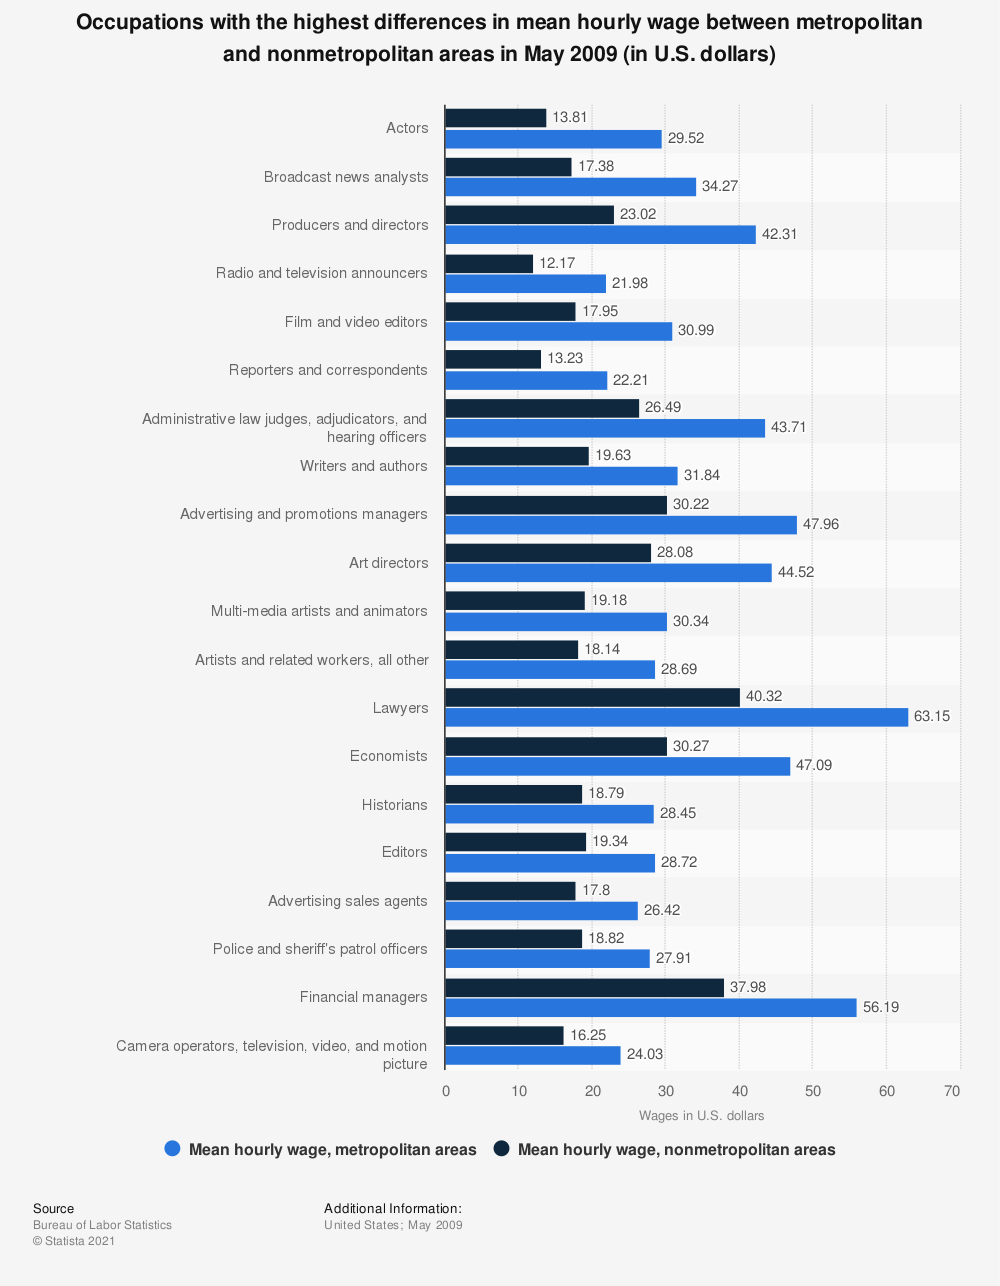 Statistic: Occupations with the highest differences in mean hourly wage between metropolitan and nonmetropolitan areas in May 2009 (in U.S. dollars) | Statista